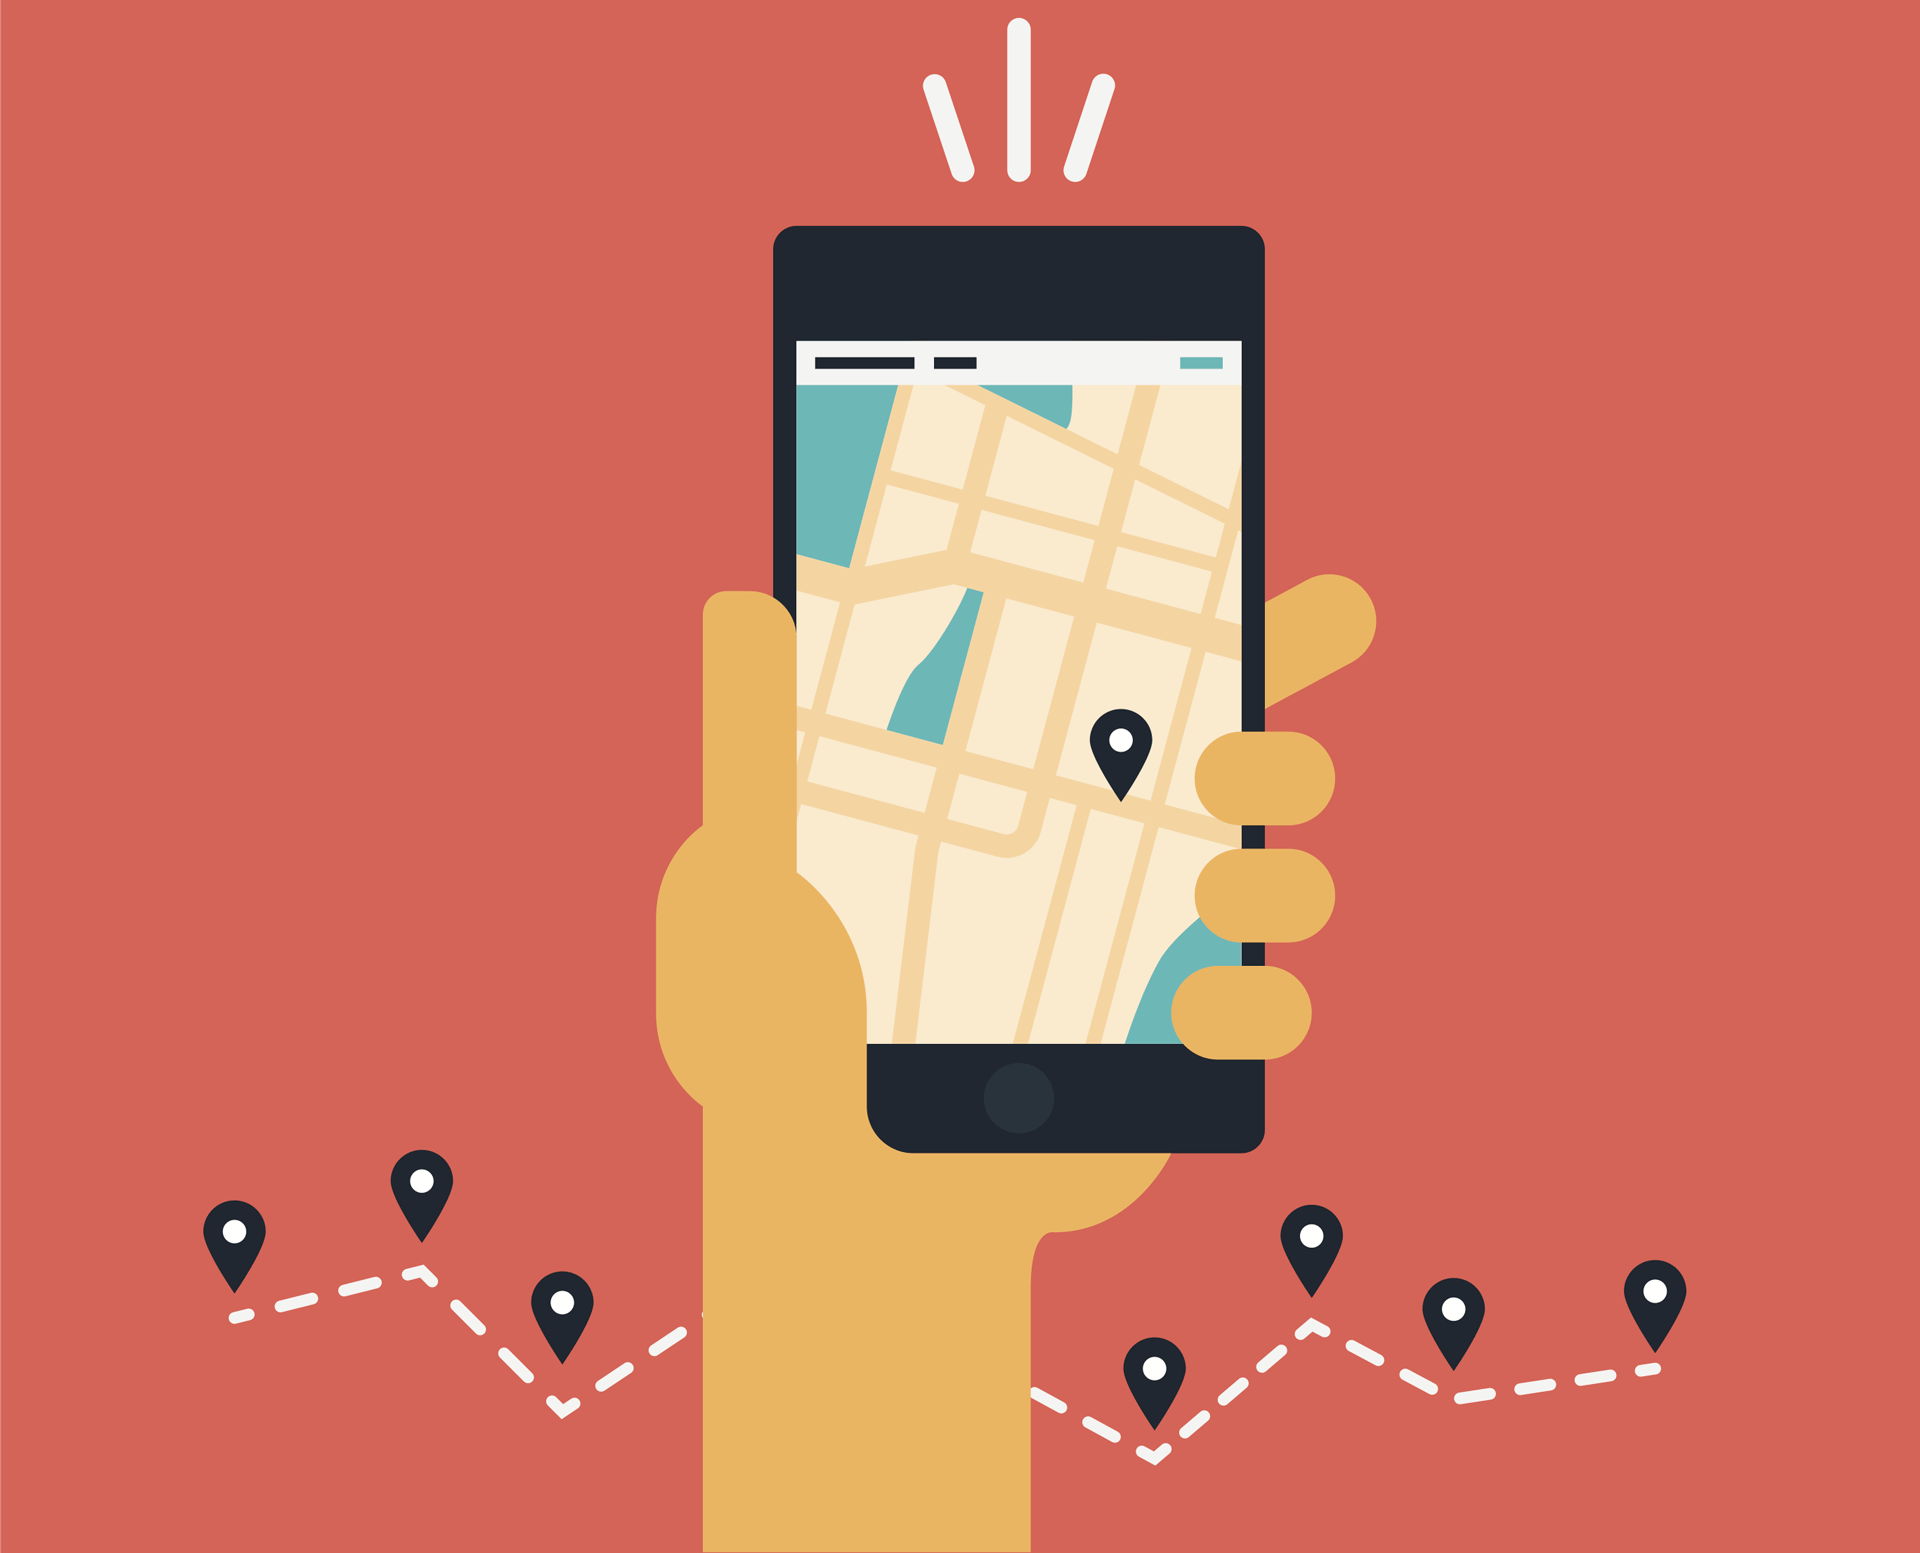 Learn 3 easiest ways to track someone's location on iPhone